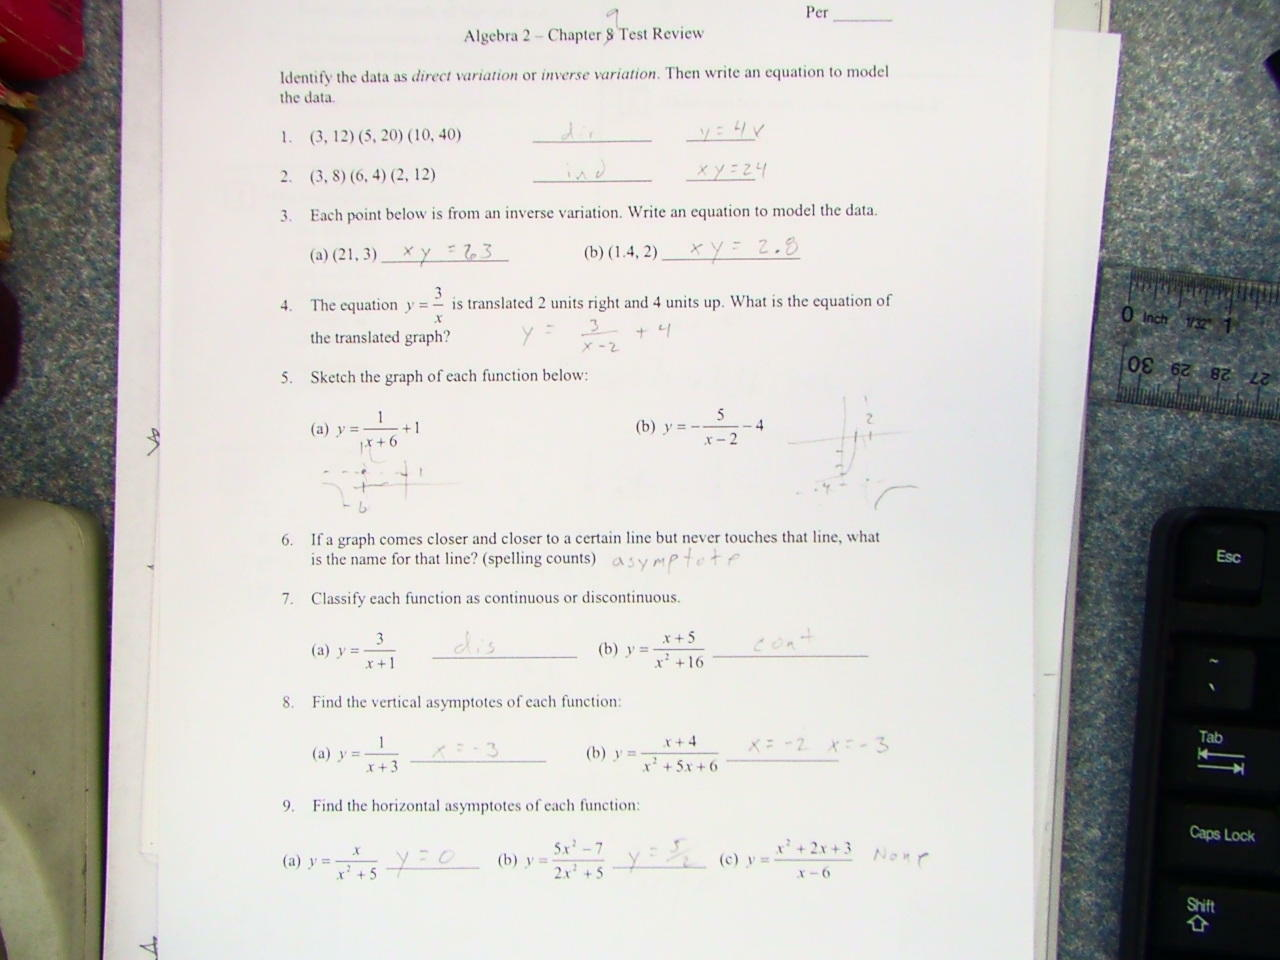 Fitzpatrick, Mark / Advanced Algebra 2